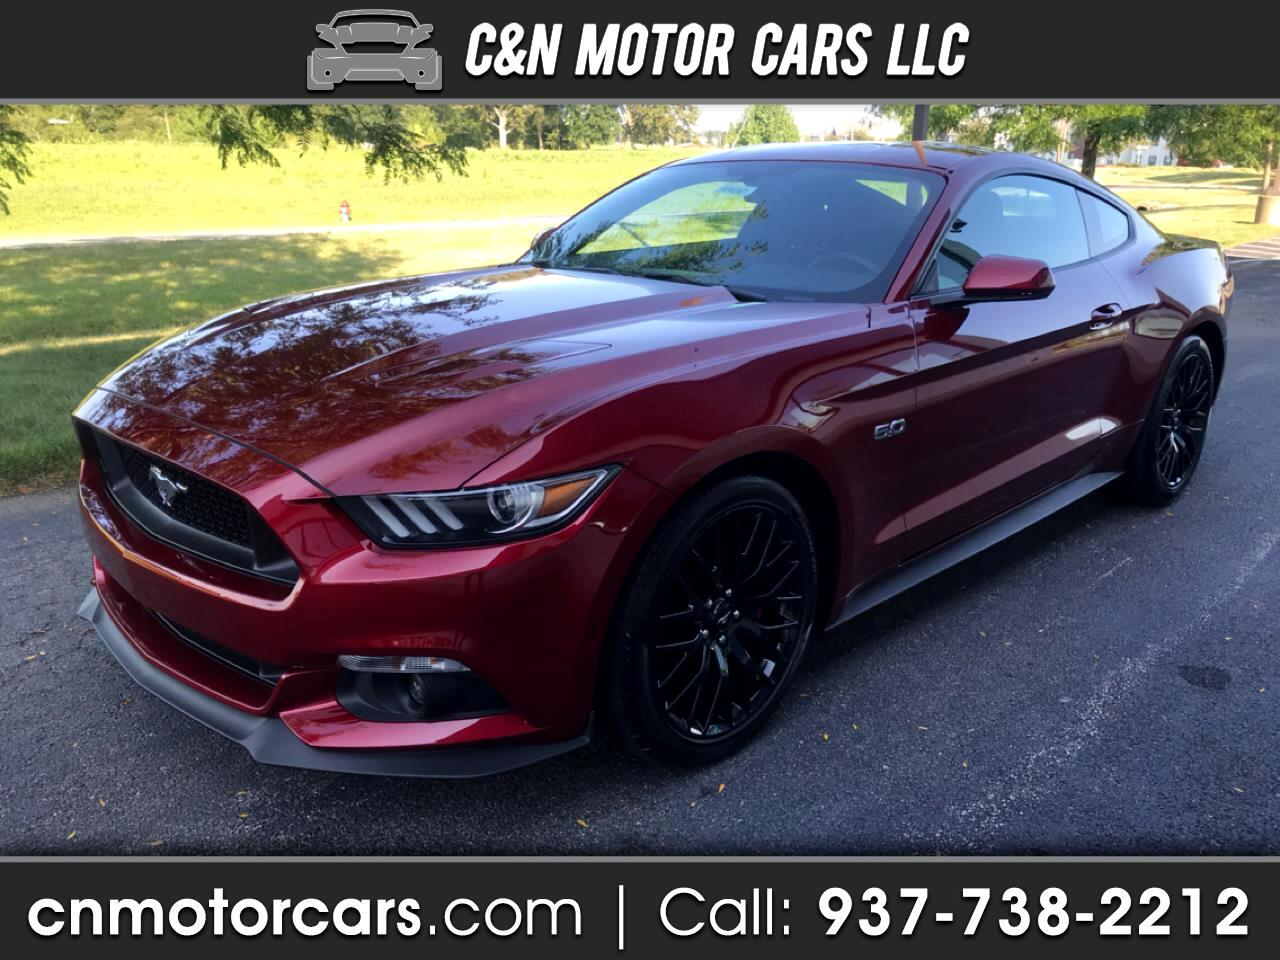 2017 Ford Mustang 2dr Coupe GT